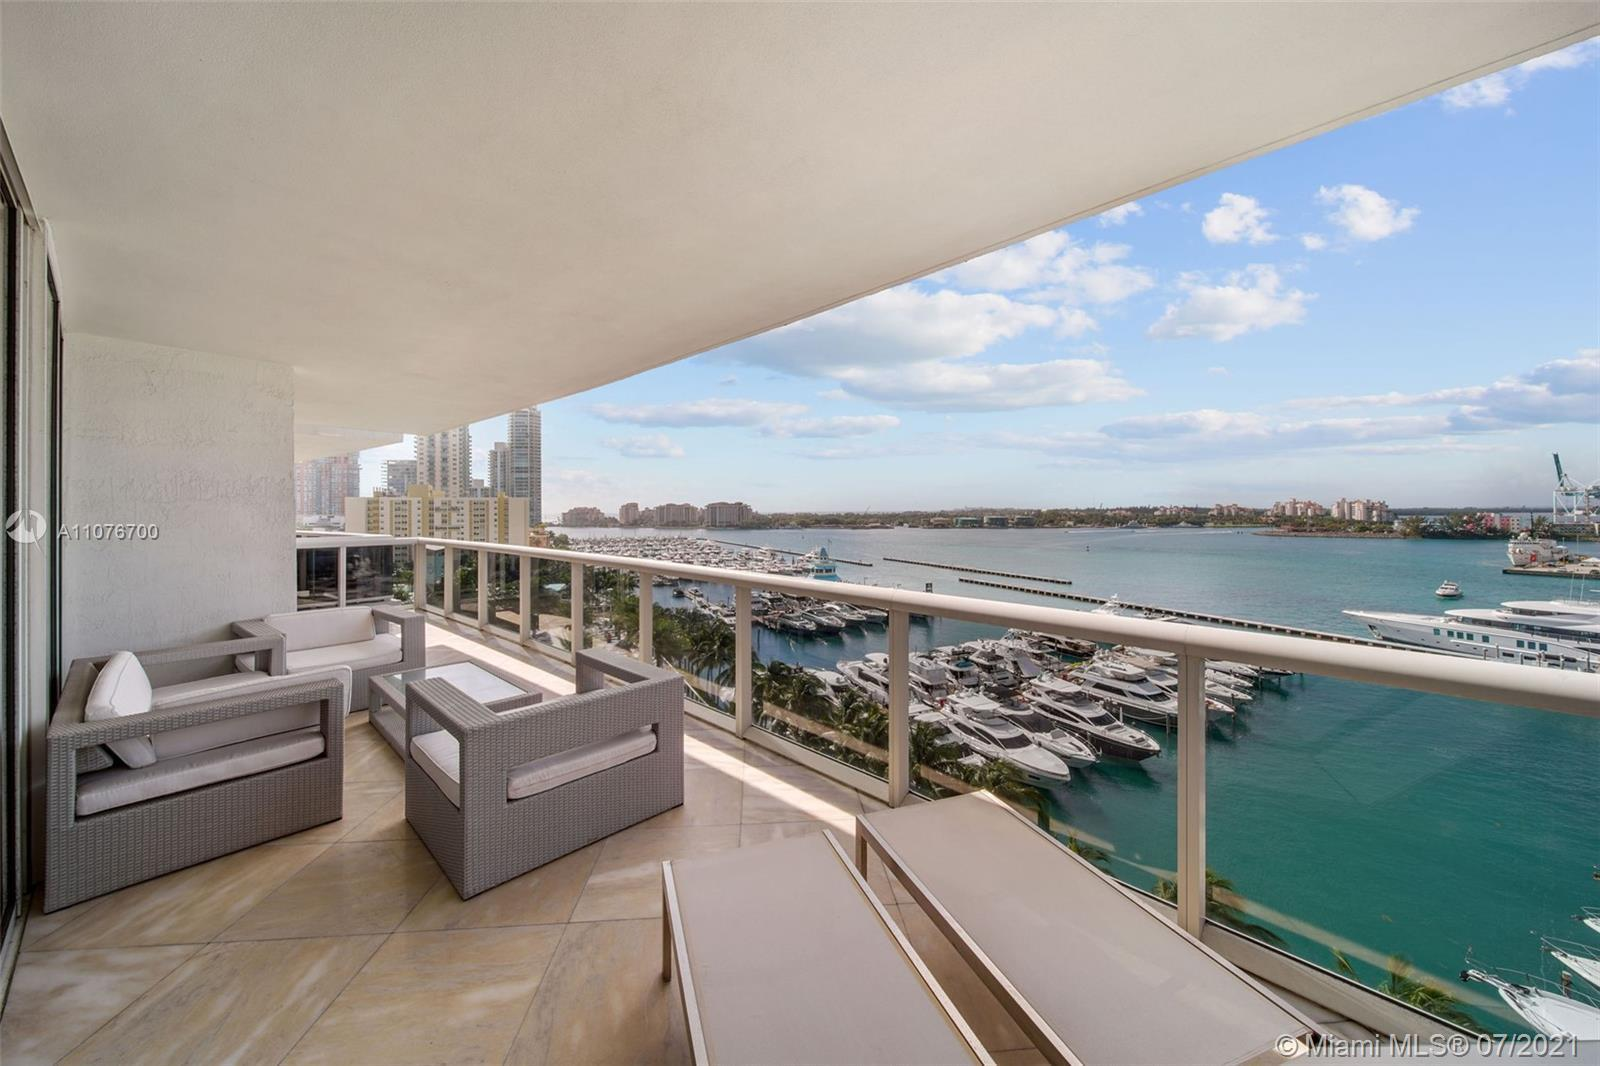 The bay views from this sprawling 3058 sq. ft. residence are second to none. The building is among t